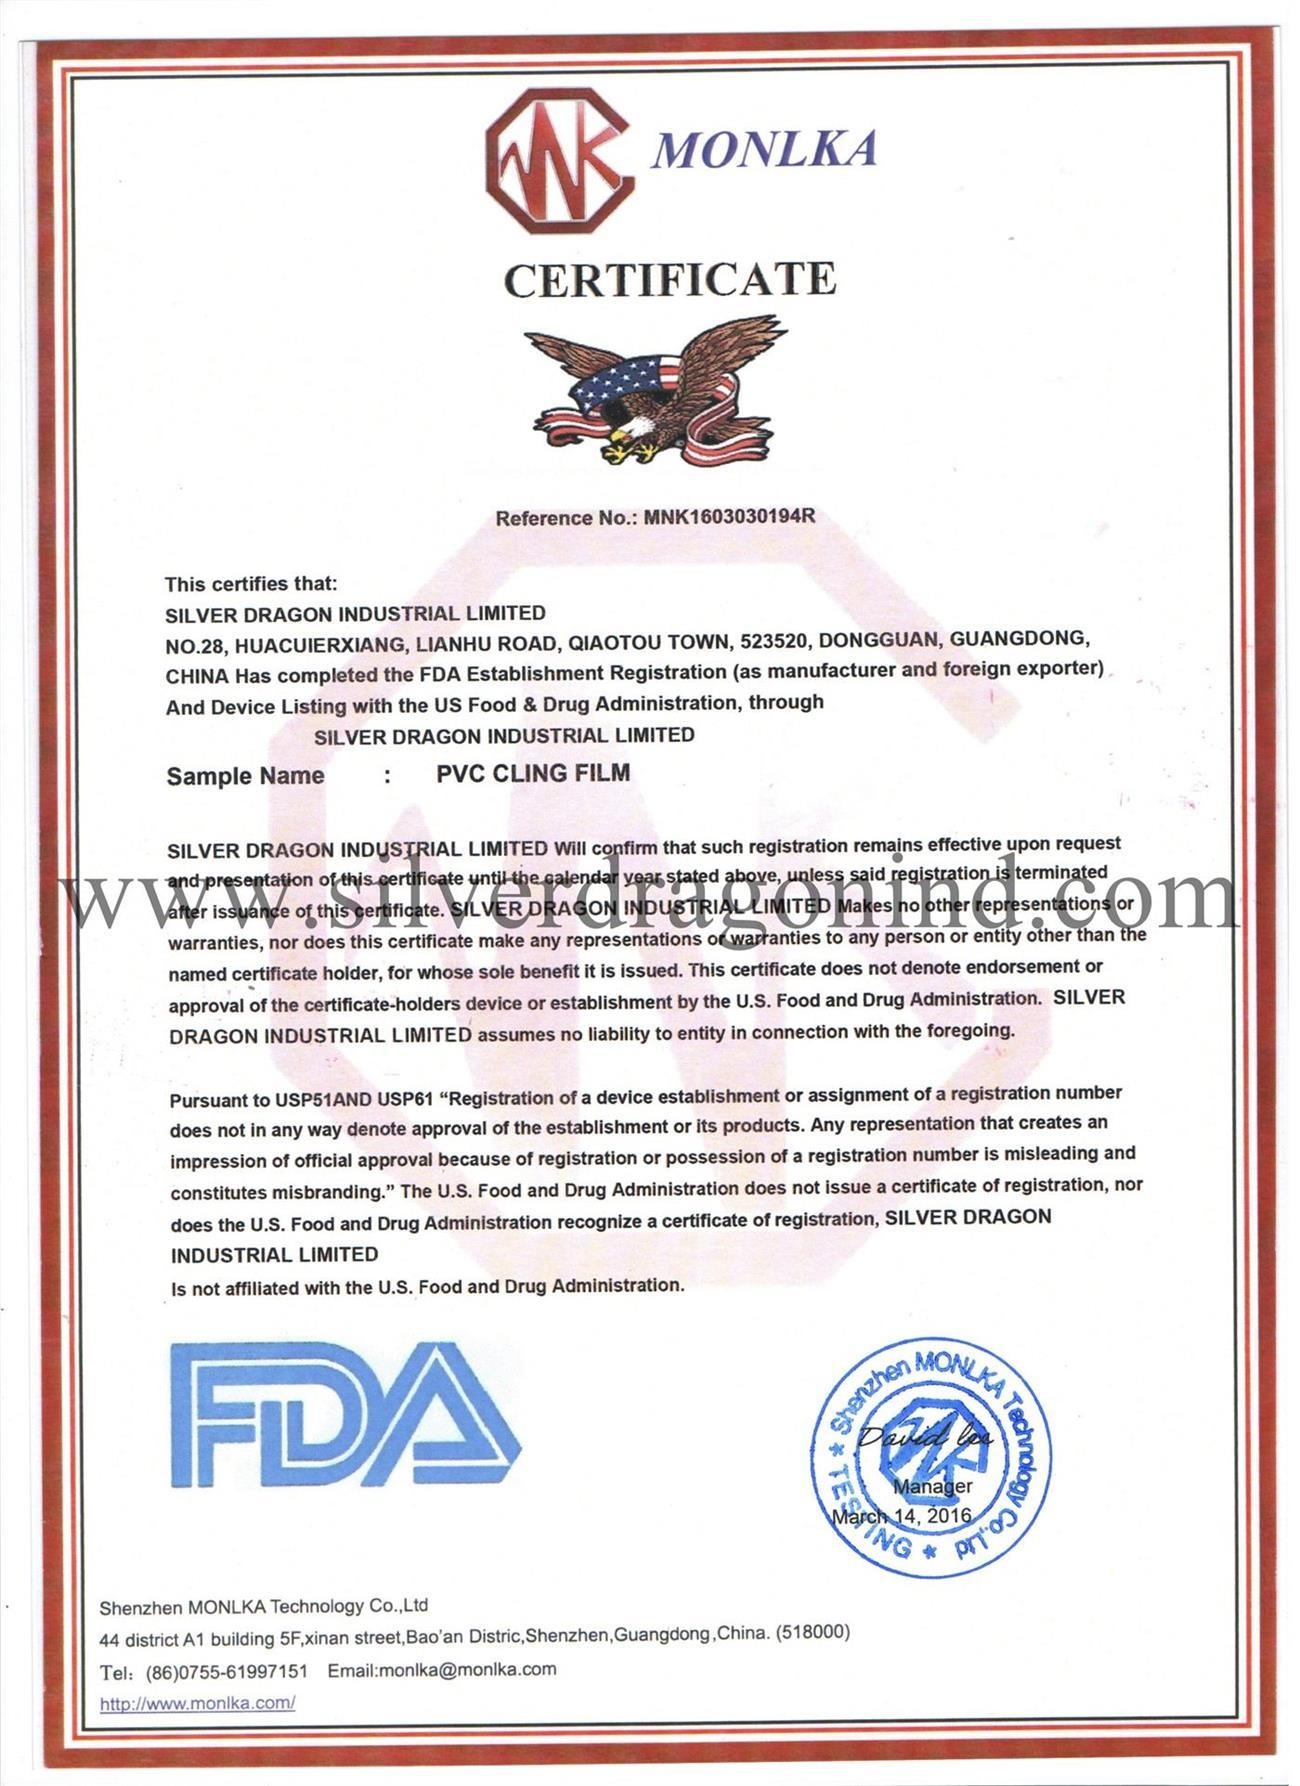 Fda certificate for pvc cling film silver dragon industrial limited fda certificate for pvc cling film yadclub Image collections